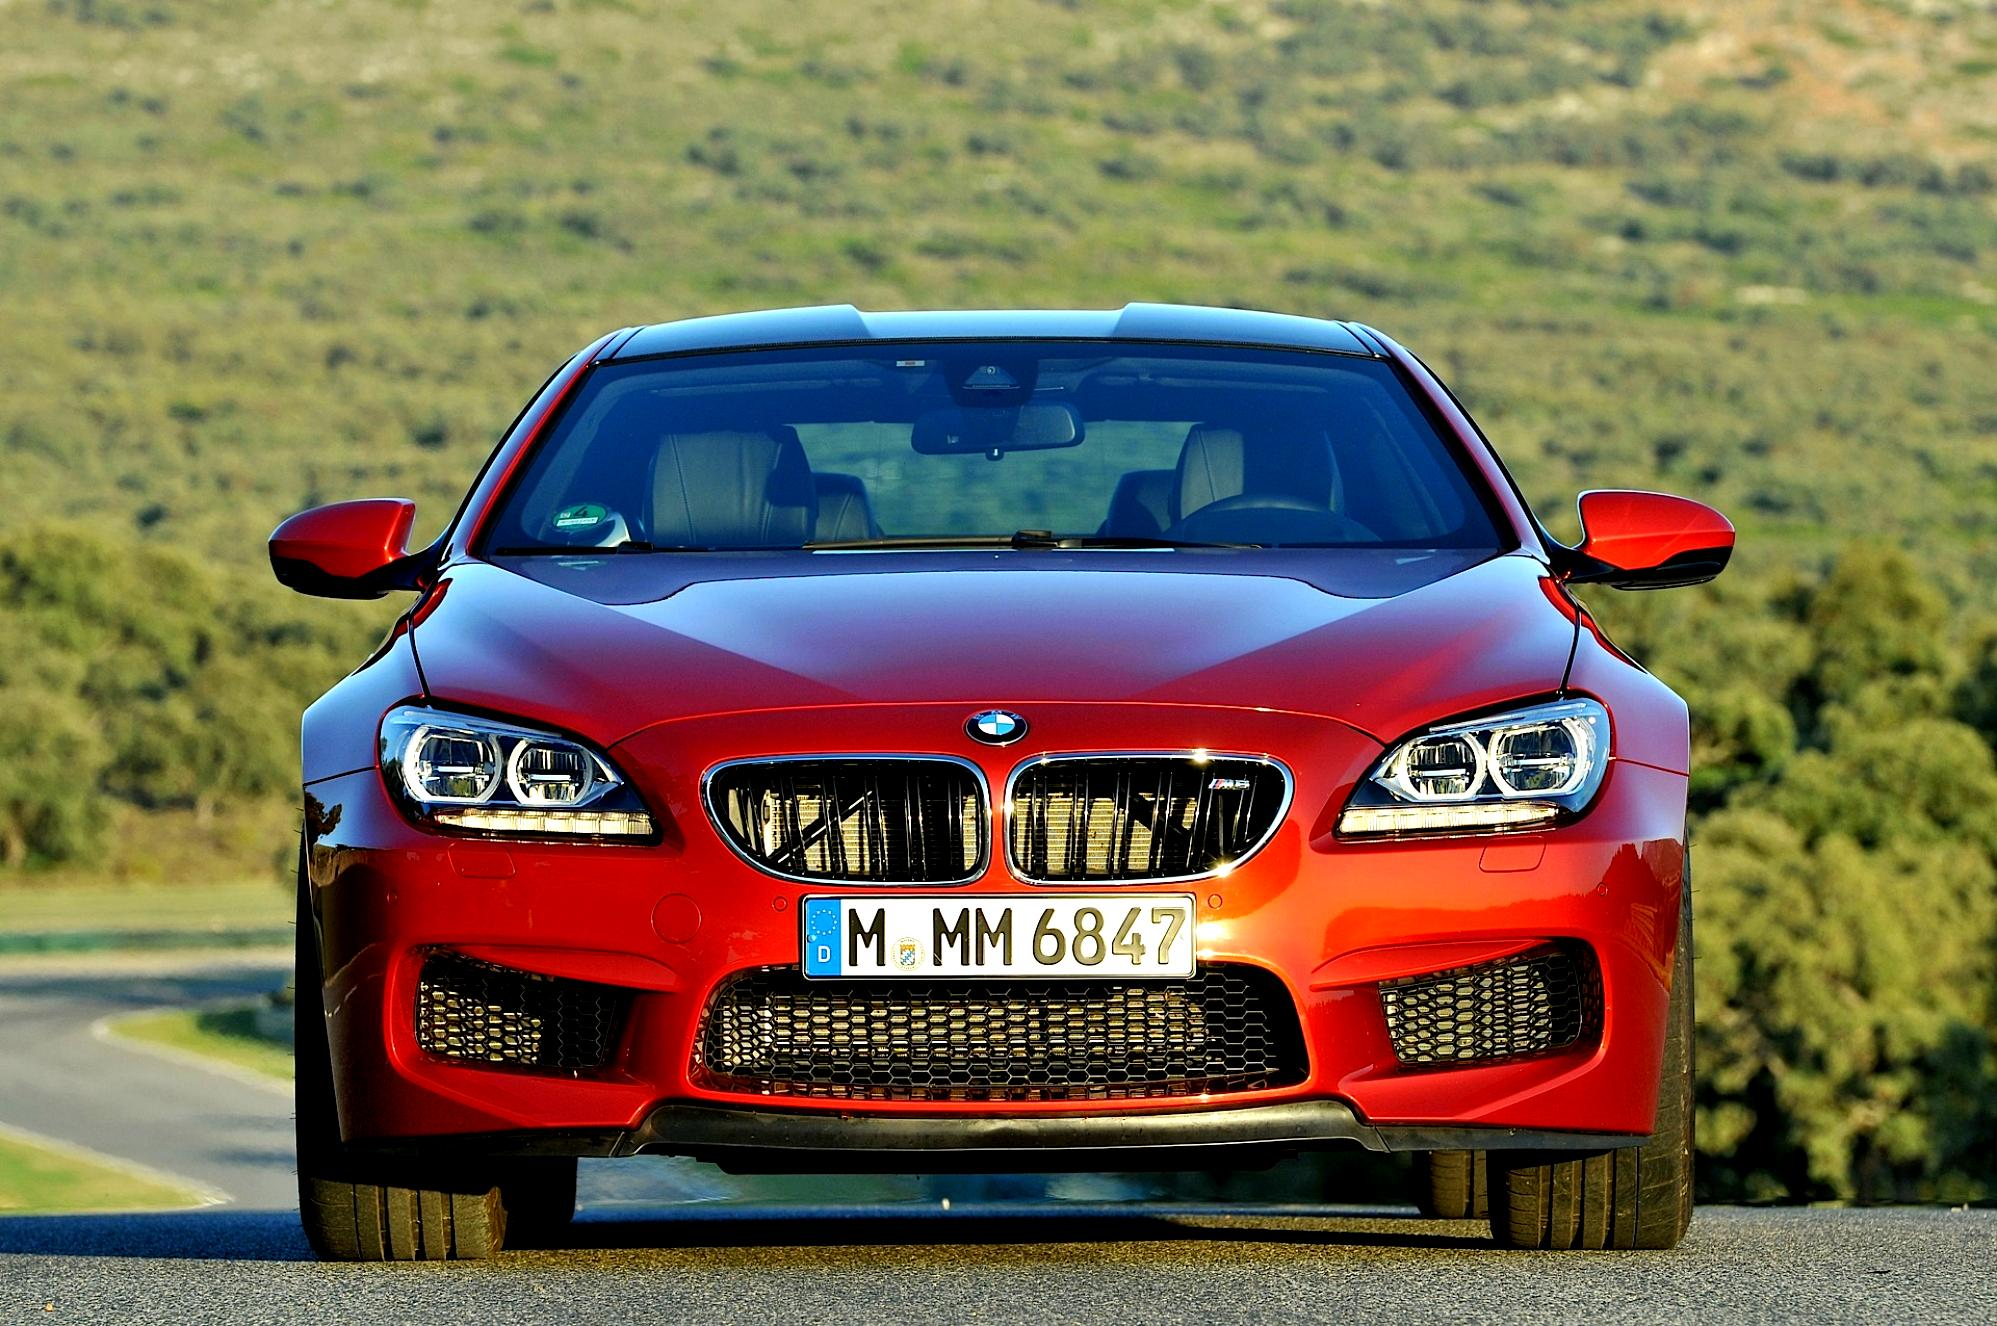 BMW M6 Coupe F13 2012 #82